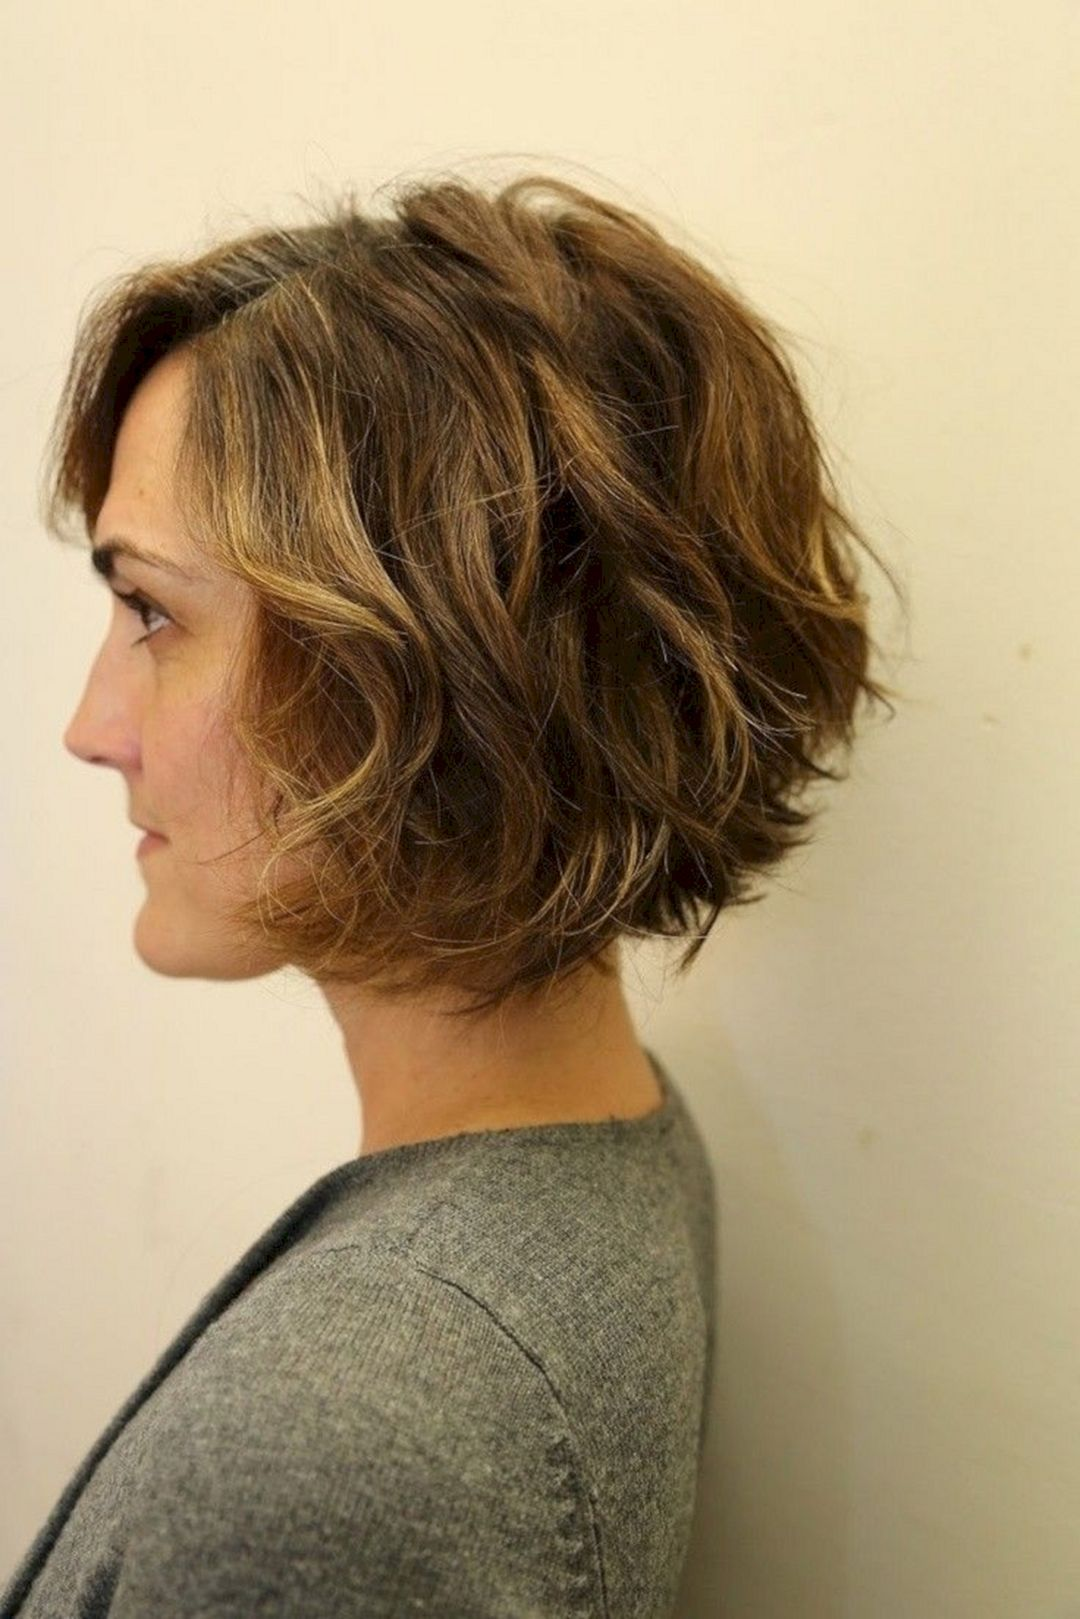 10+ Chic Short Hairstyle Ideas For Pretty Women Inspiration | Coiffures bob ondulées, Coiffure ...